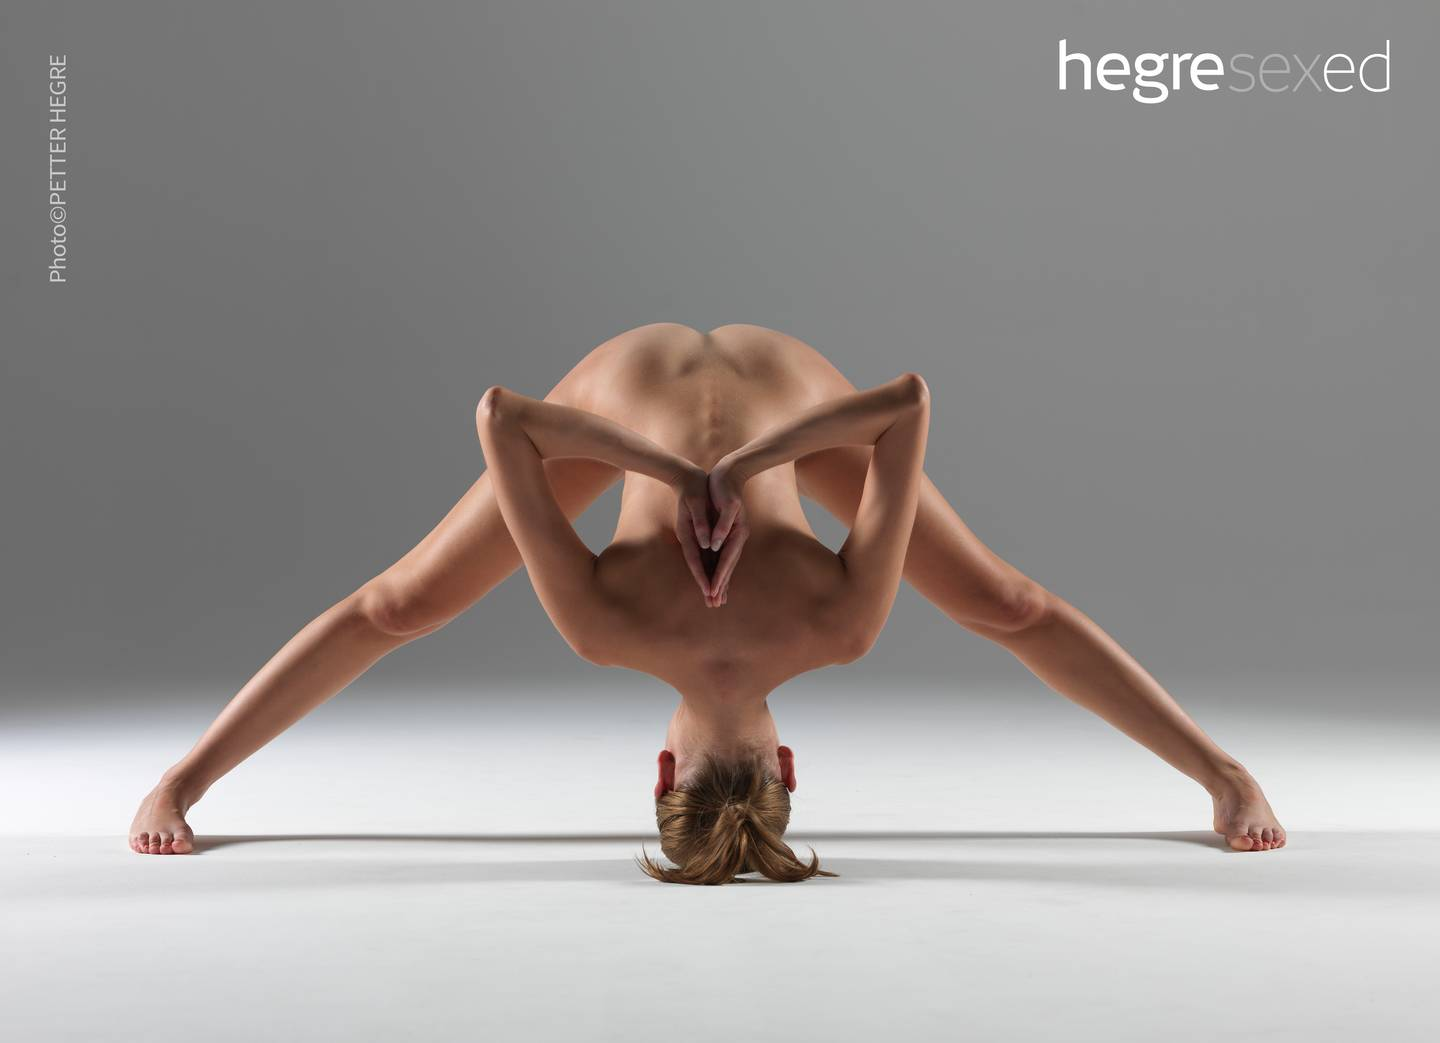 7-ways-yoga-boosts-your-sex-life-9-content-image-1440x